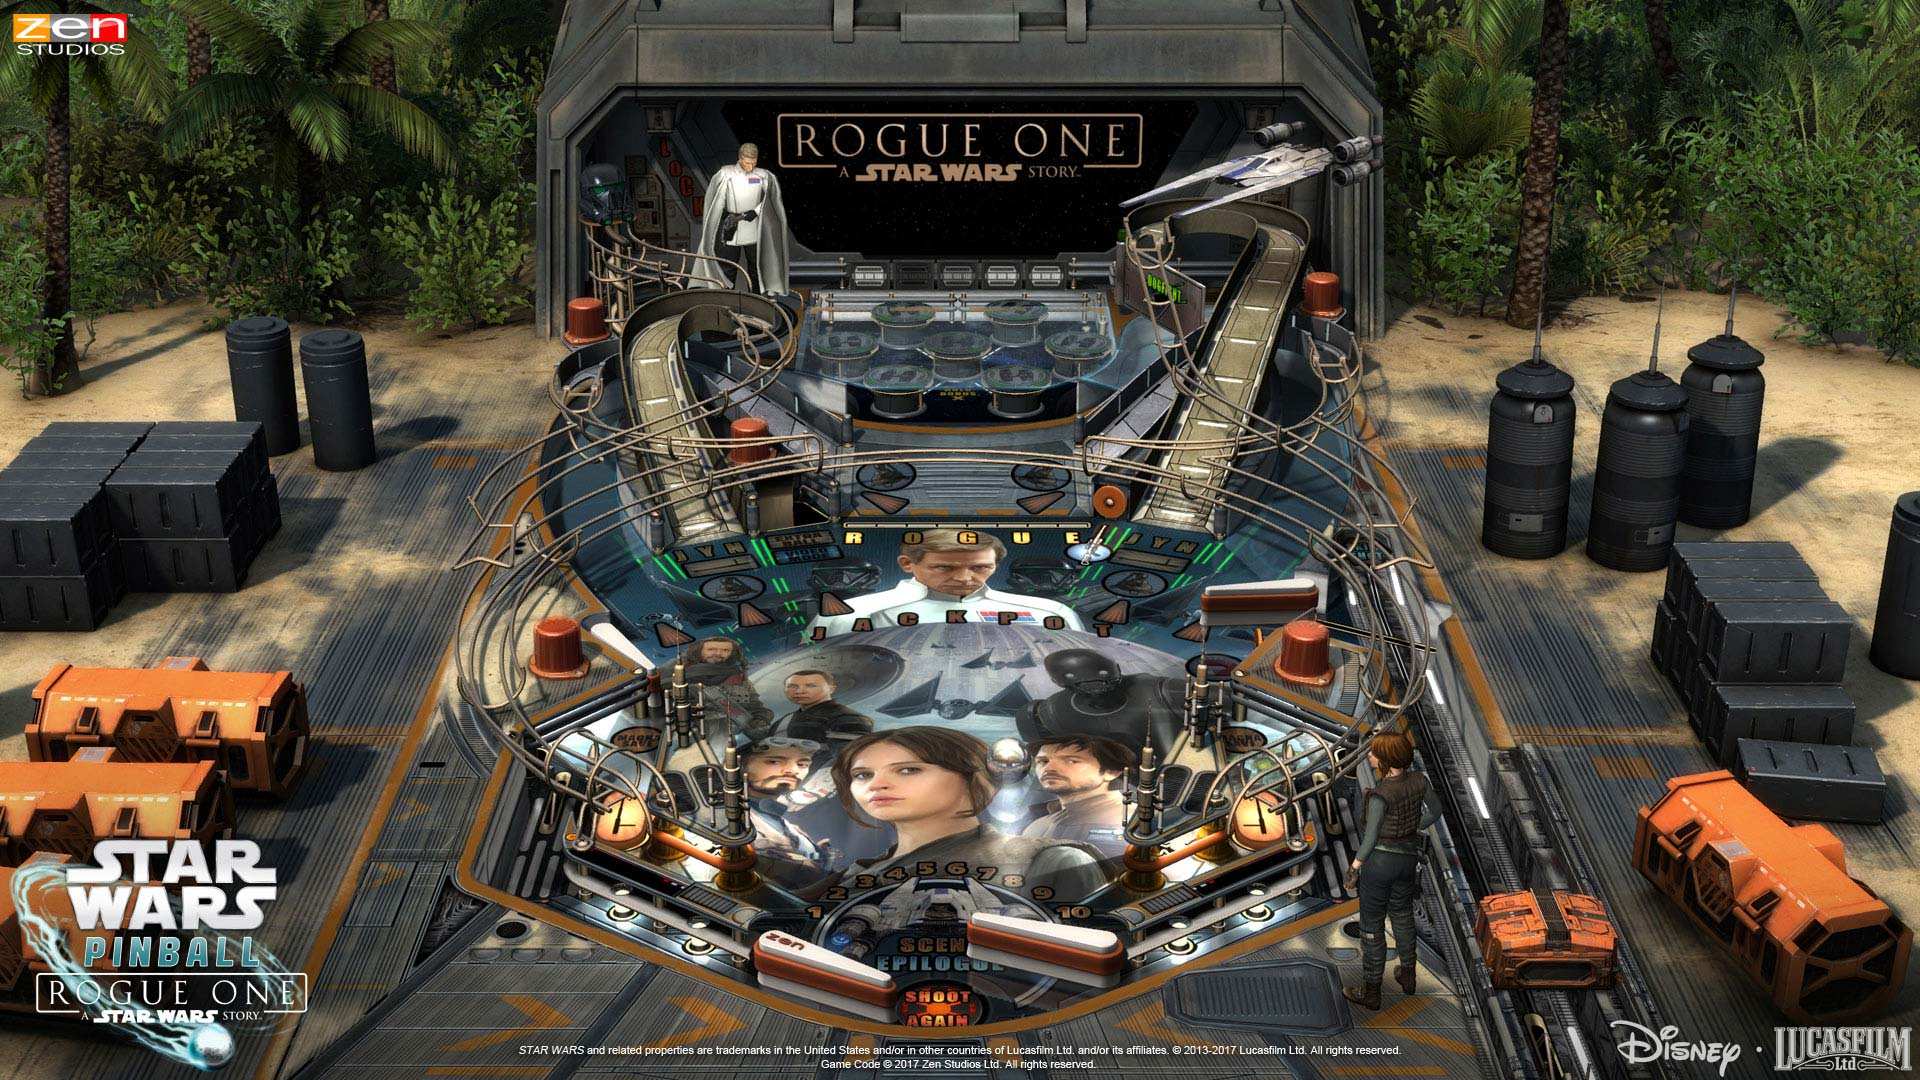 Pinball FX2 Star Wars Rogue One Table on Scarif